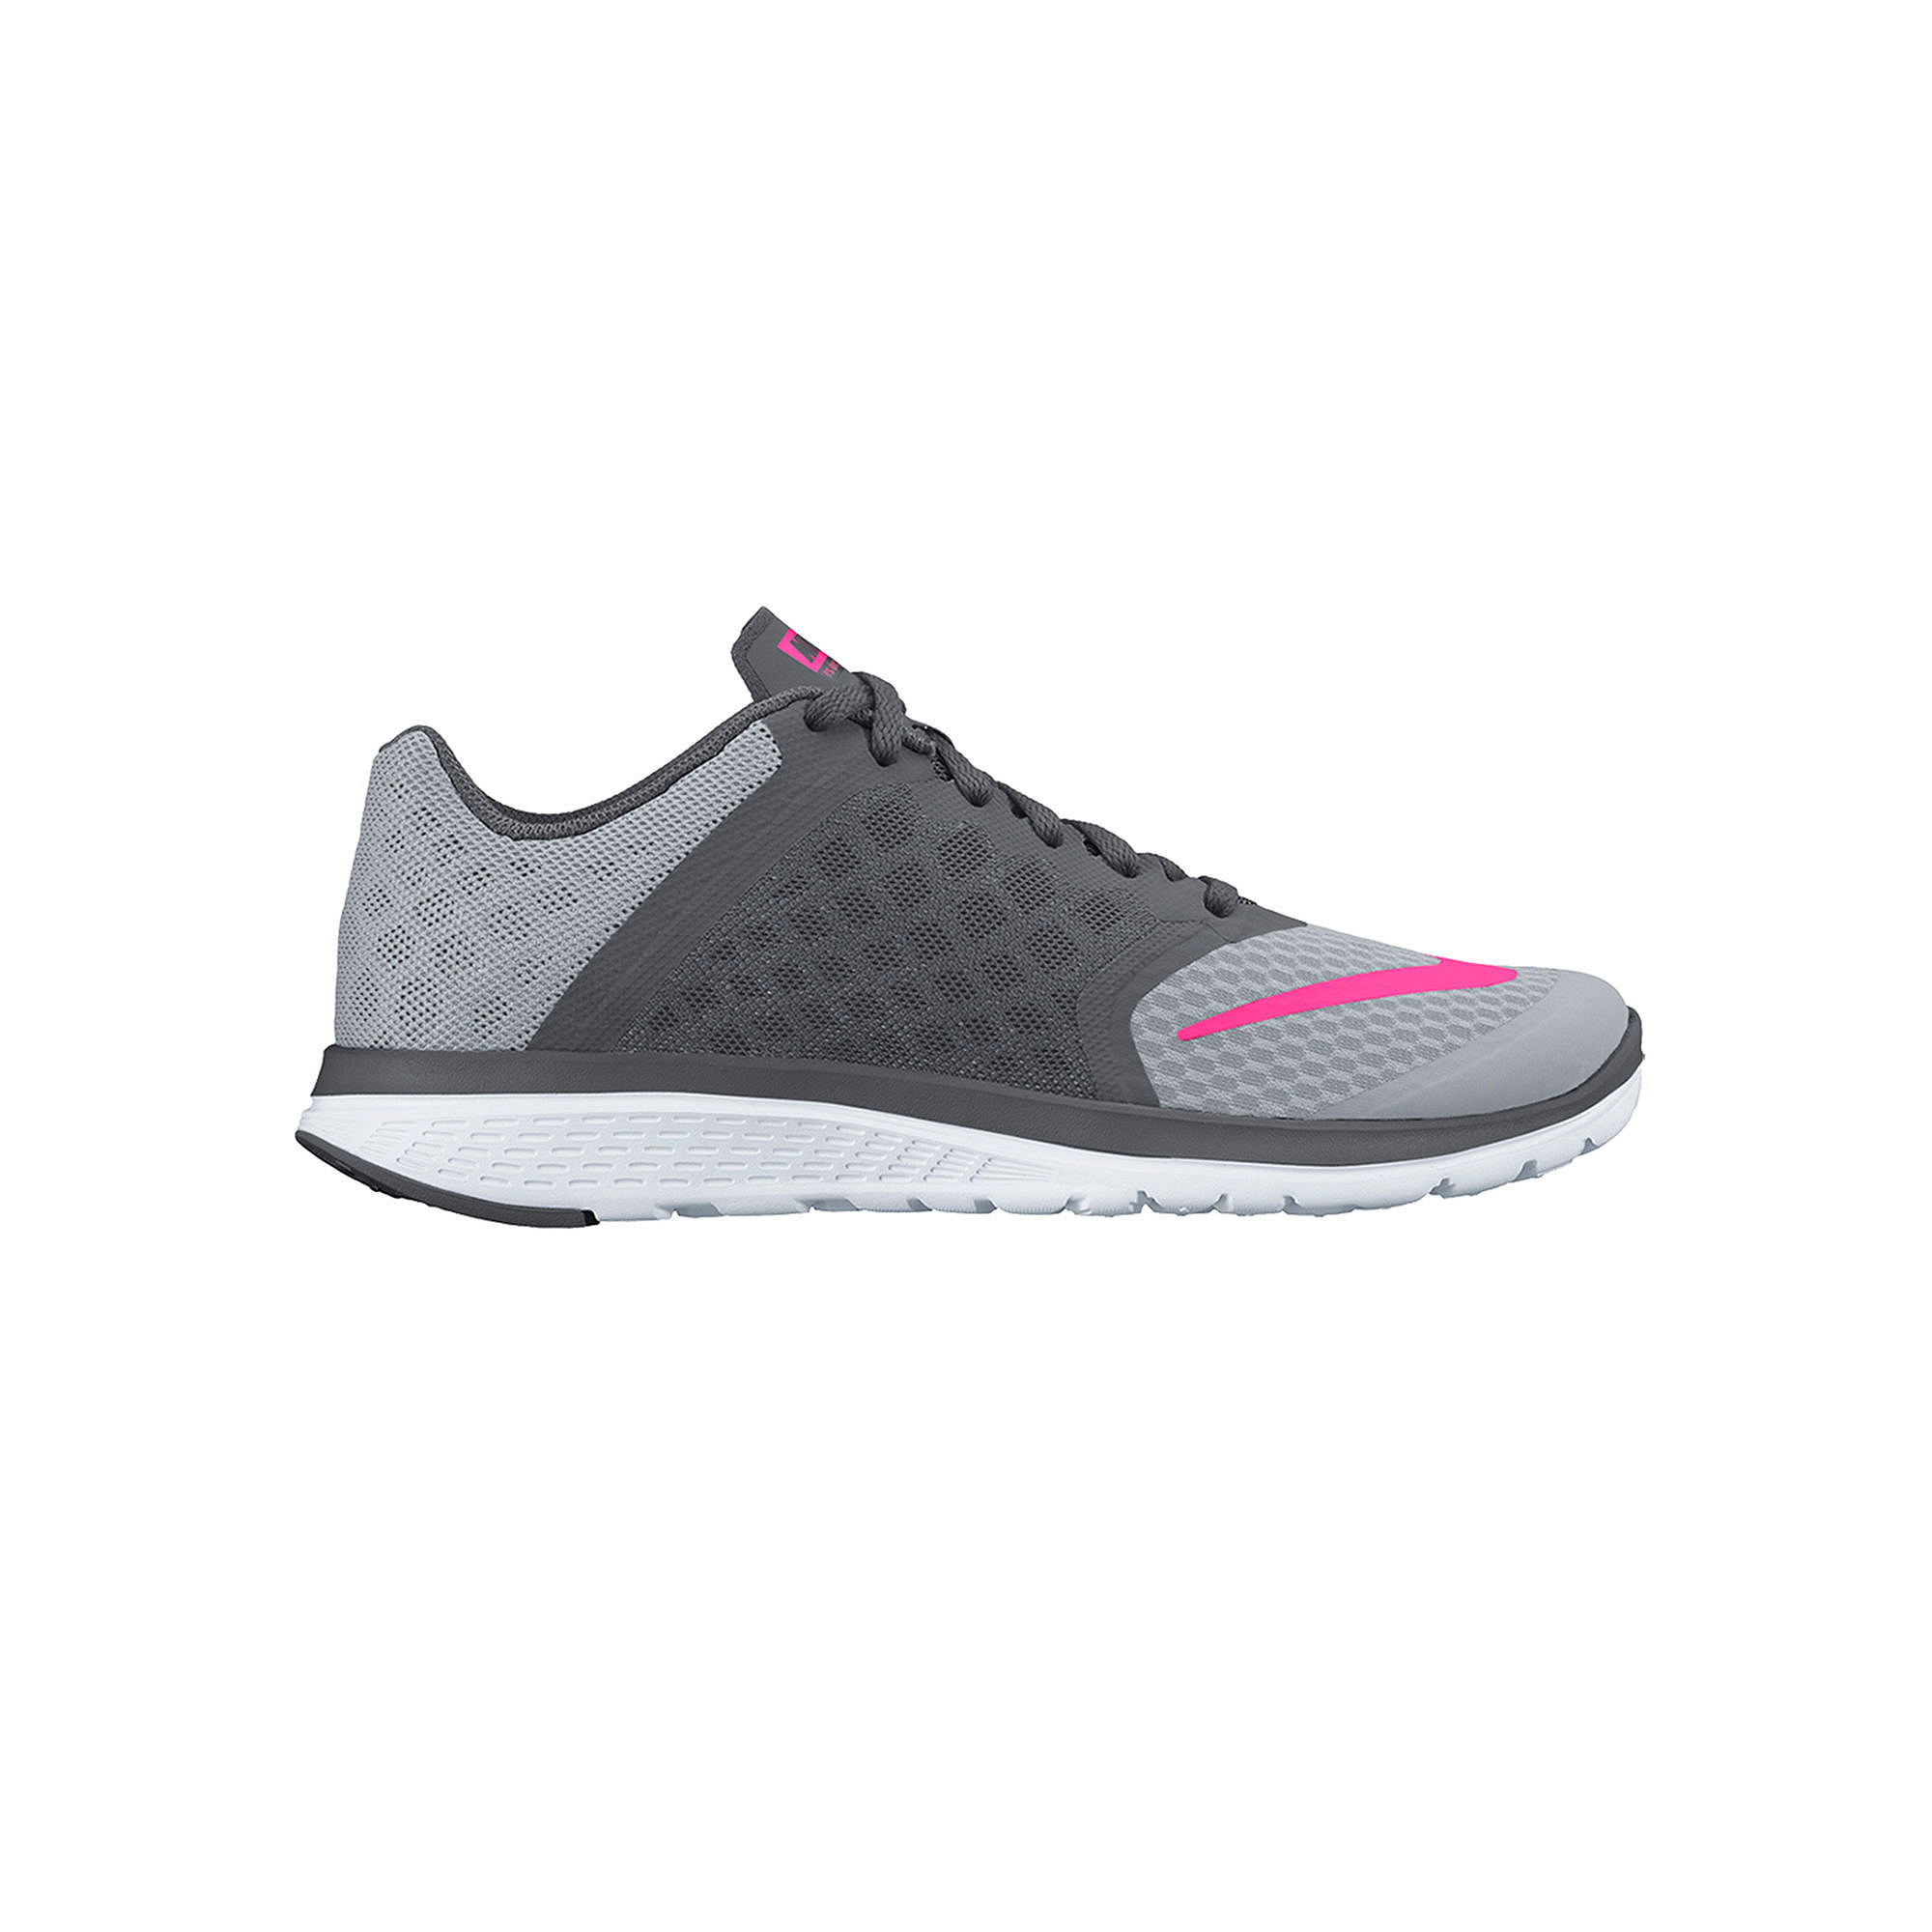 Jcpenney Nike Shoes Coupons